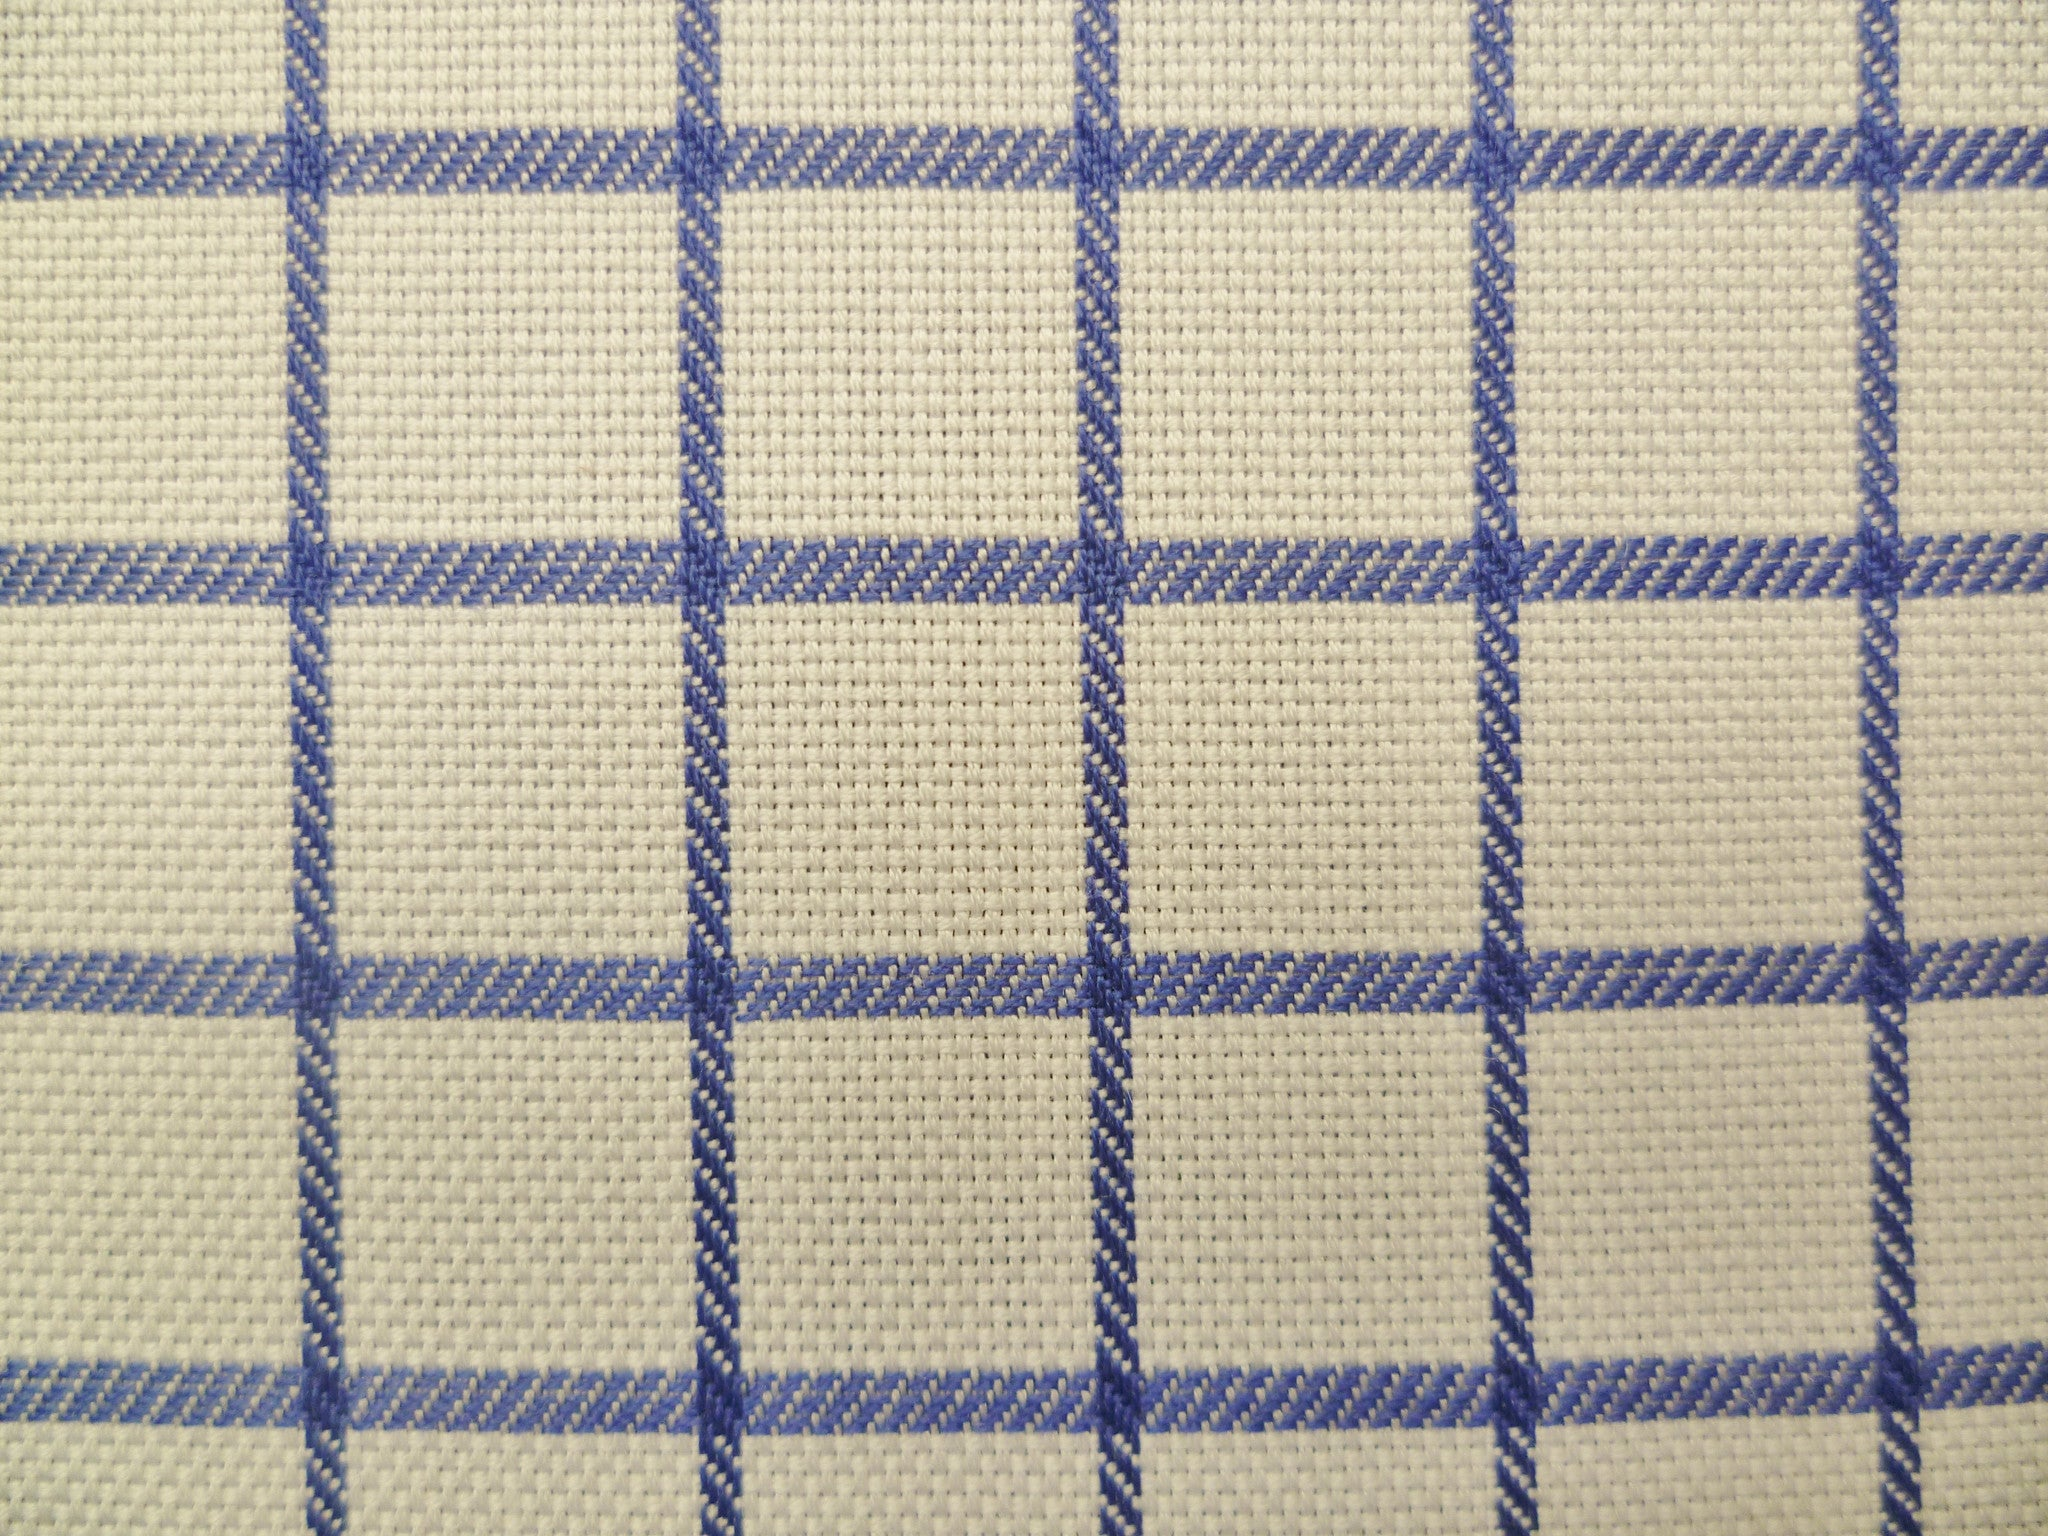 Ocean Blue and White Checked Cotton